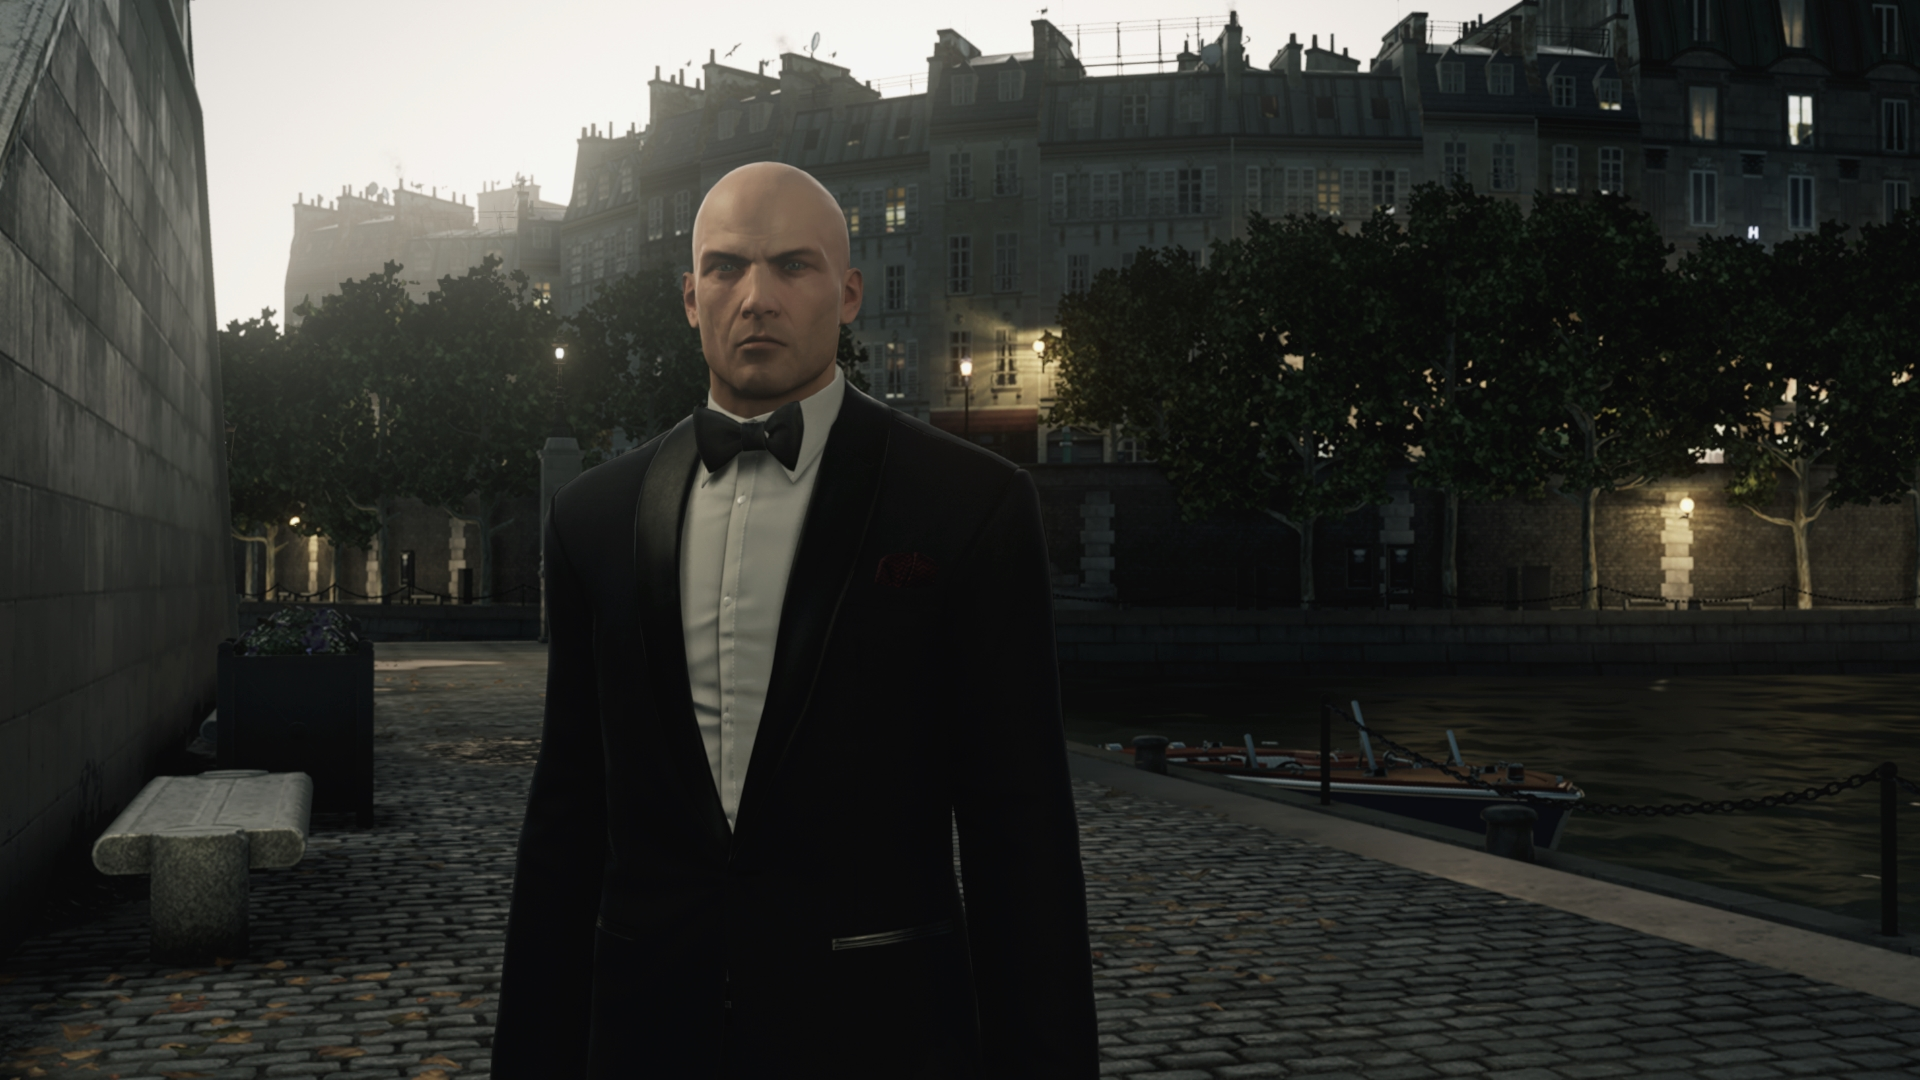 Hitman - the name's 47, Agent 47